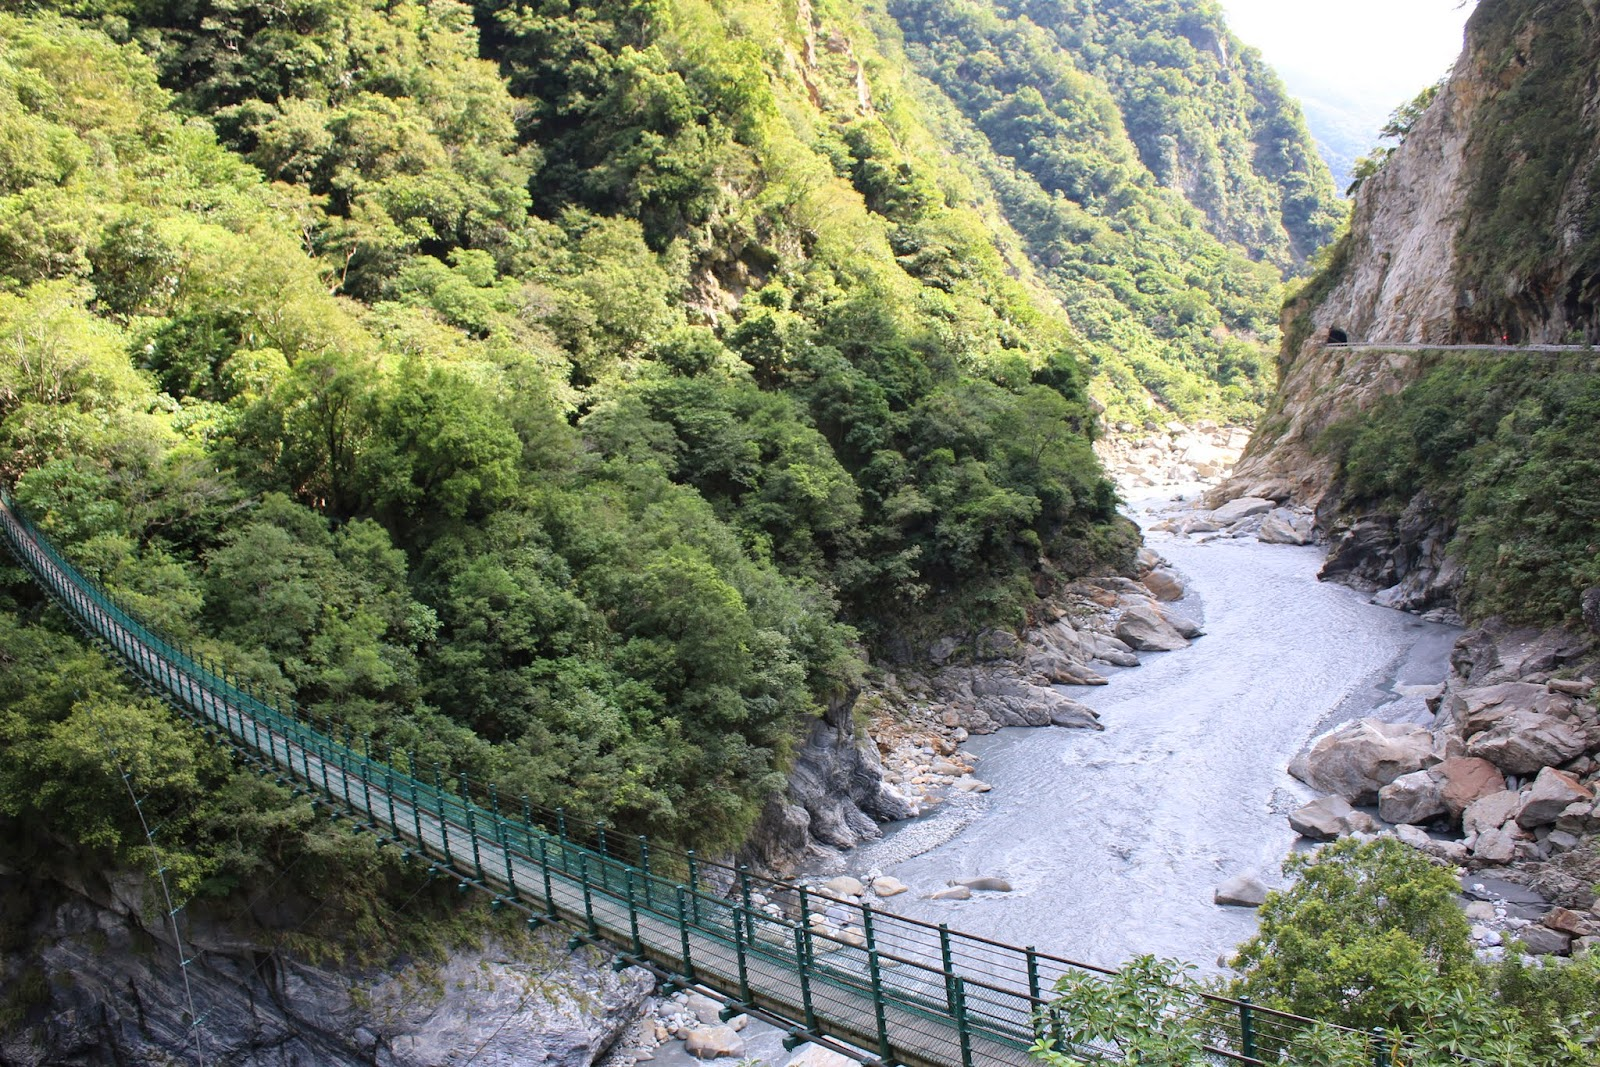 Another close shot of Liwu River with the suspension bridge at Swallow Grotto at Taroko Gorge National Park in Hualien, Taiwan before leaving the trail